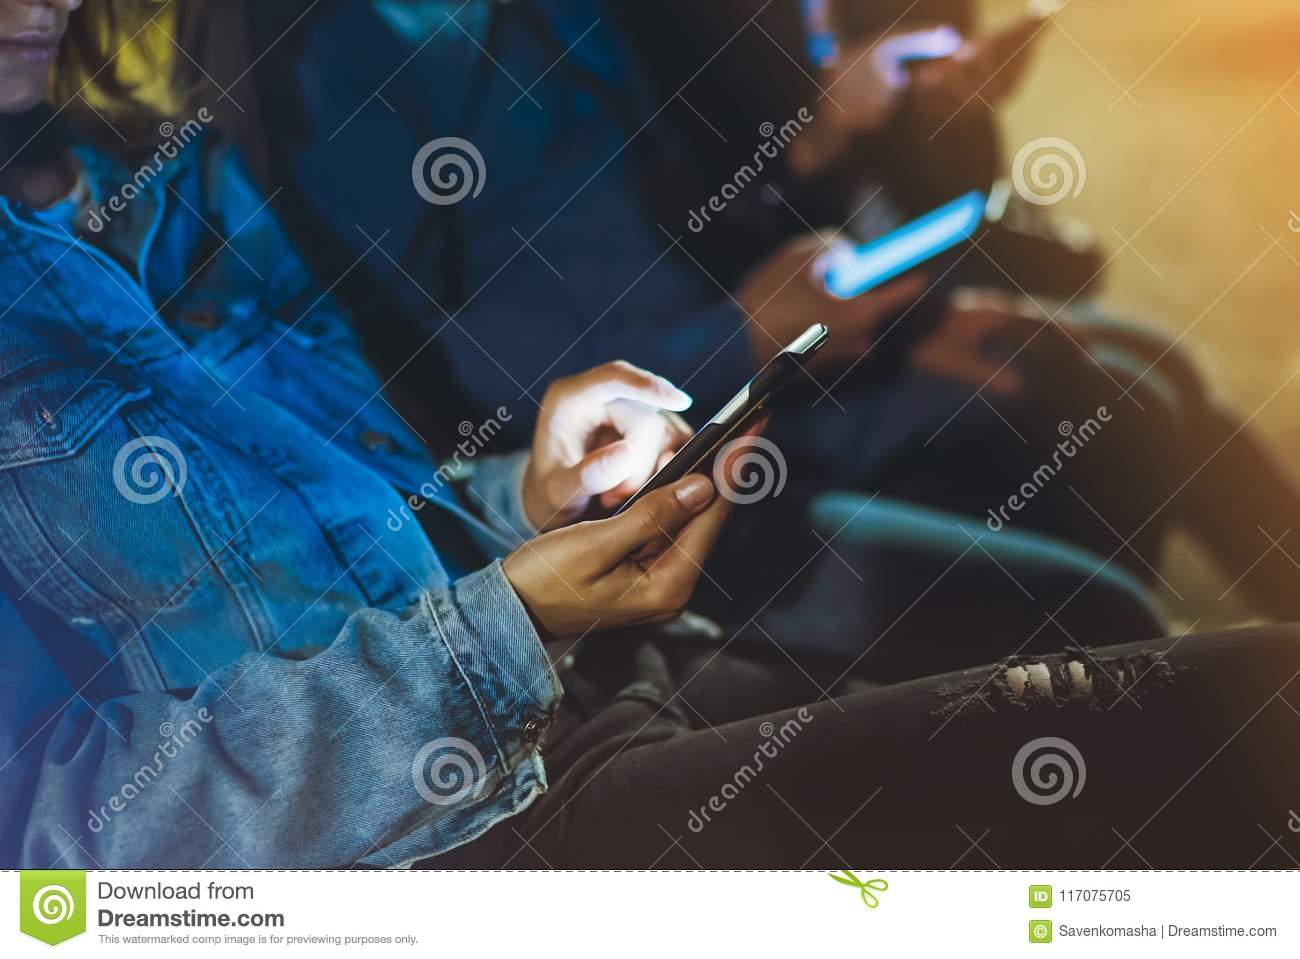 People together pointing finger on screen smartphone on background bokeh light in night atmospheric city, group adult hipsters fri